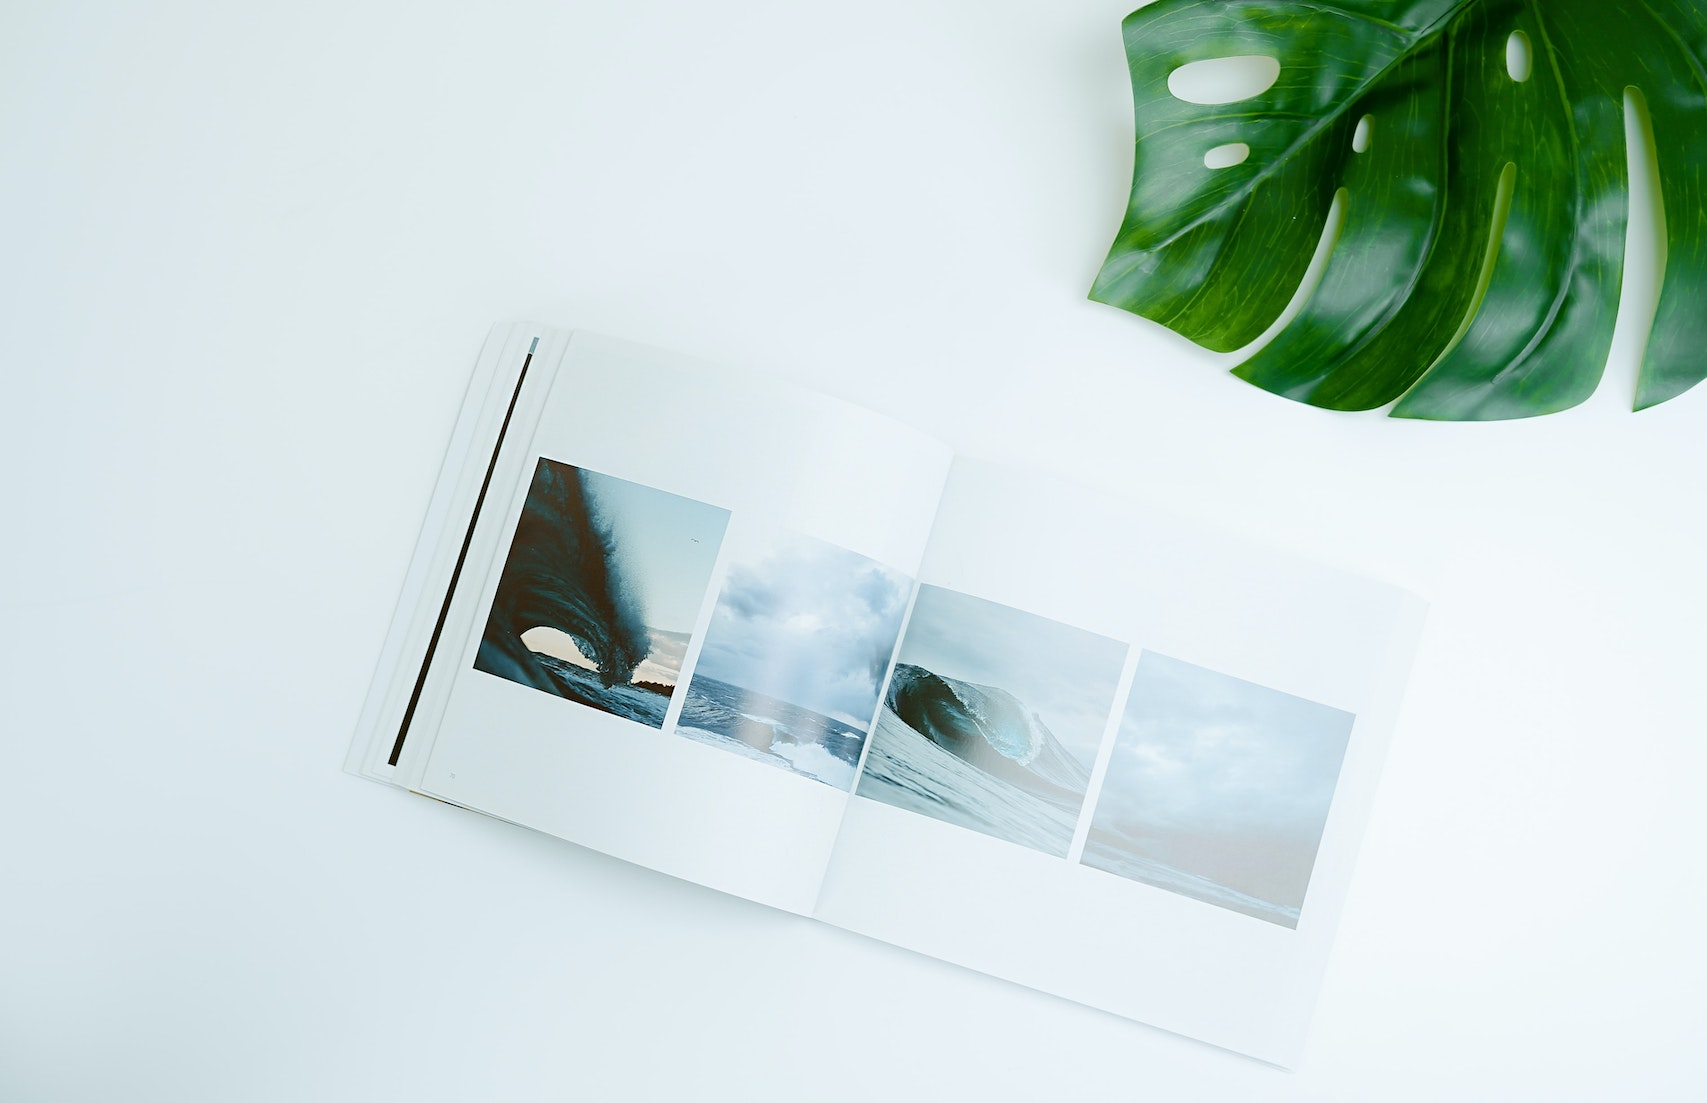 Printed book photography and environement matter